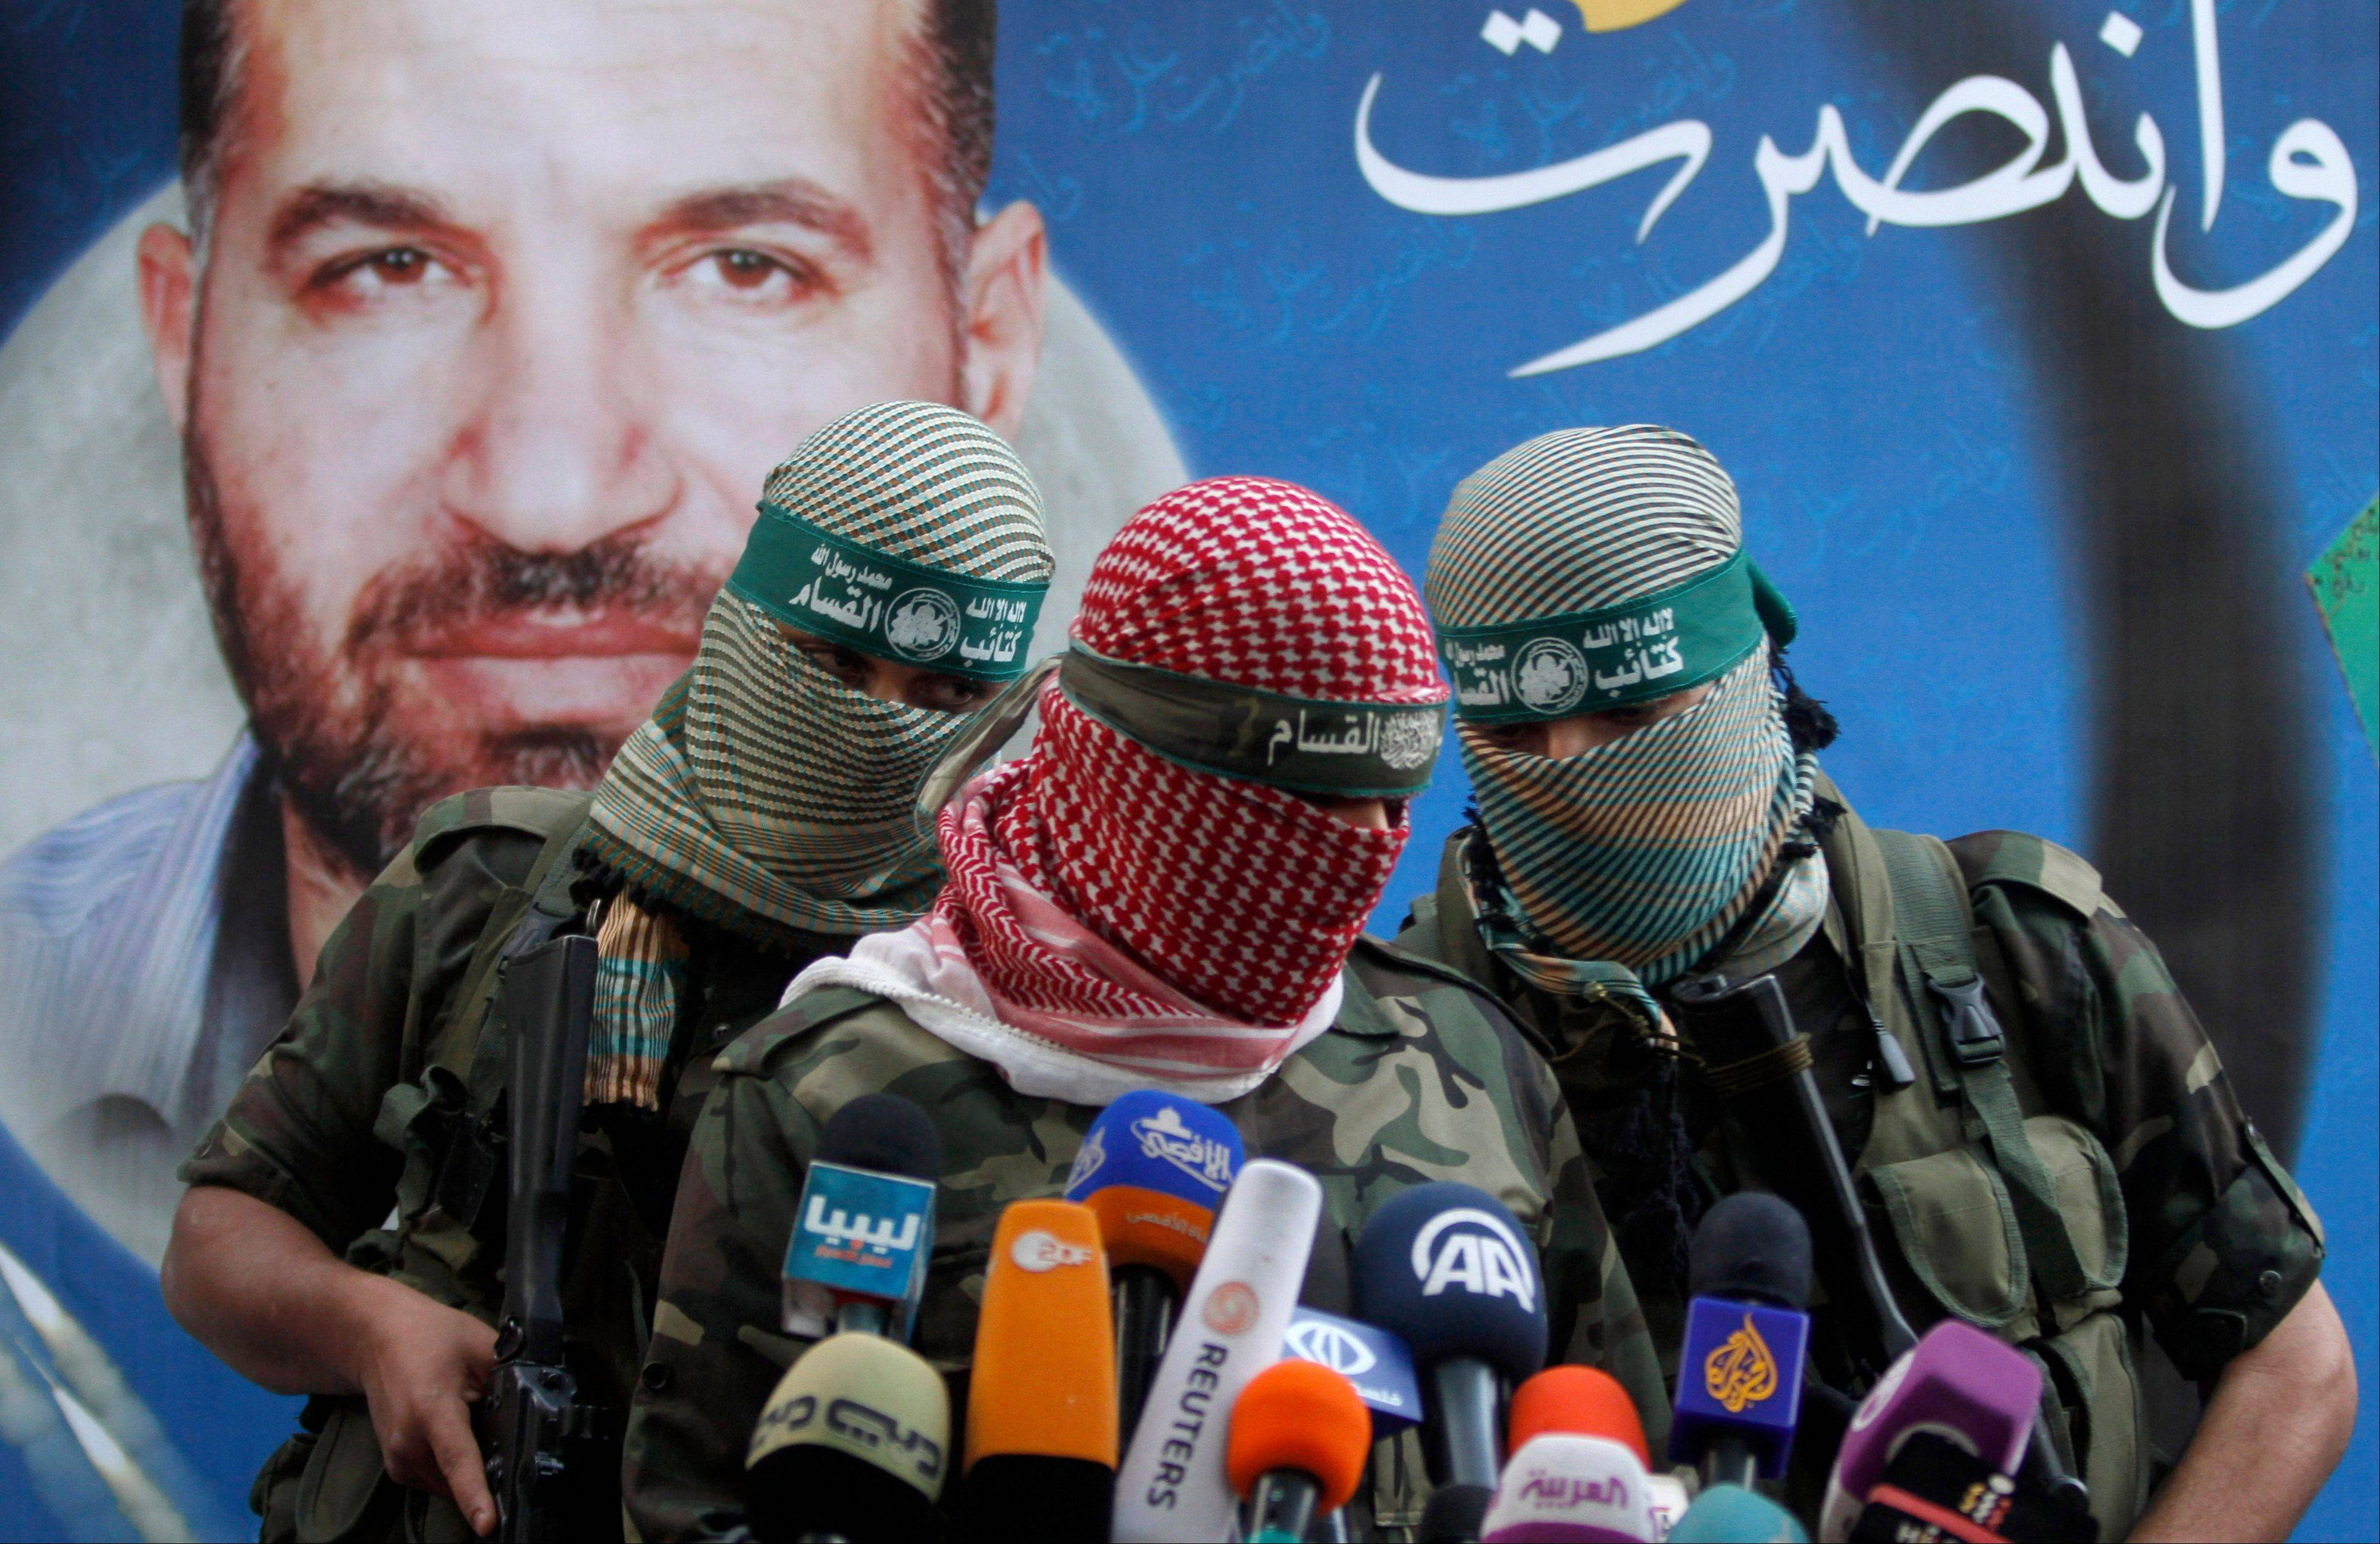 A Hamas militant talks during a press conference in Gaza City on Thursday. The poster in the background reads: �Gaza won� and shows the picture of Ahmed Jabari, a Hamas leader assassinated Nov.14 � the act that set off the last round of fighting between Israel and Hamas.